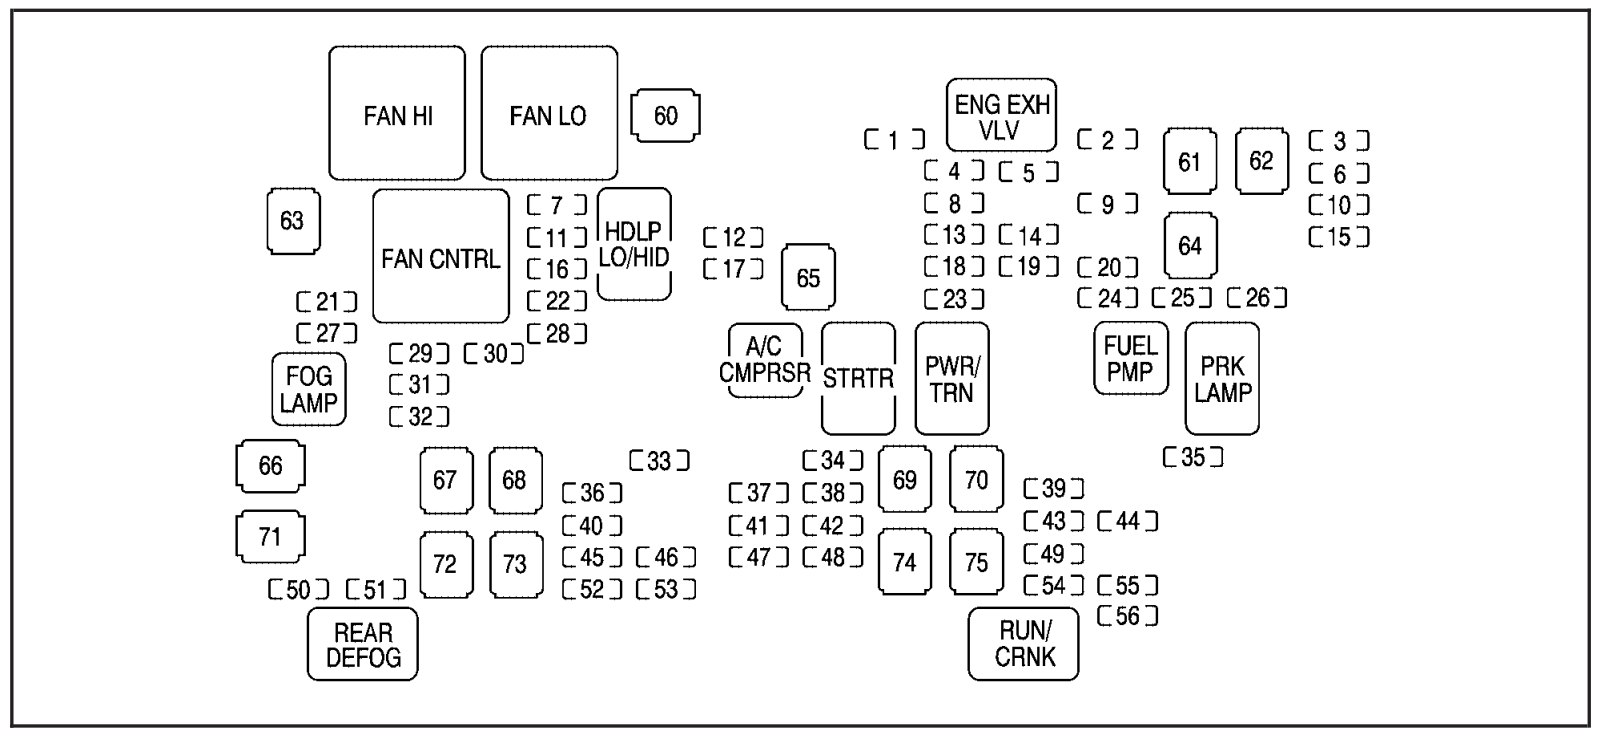 2007 chevy tahoe fuse box diagram find wiring diagram u2022 rh empcom co